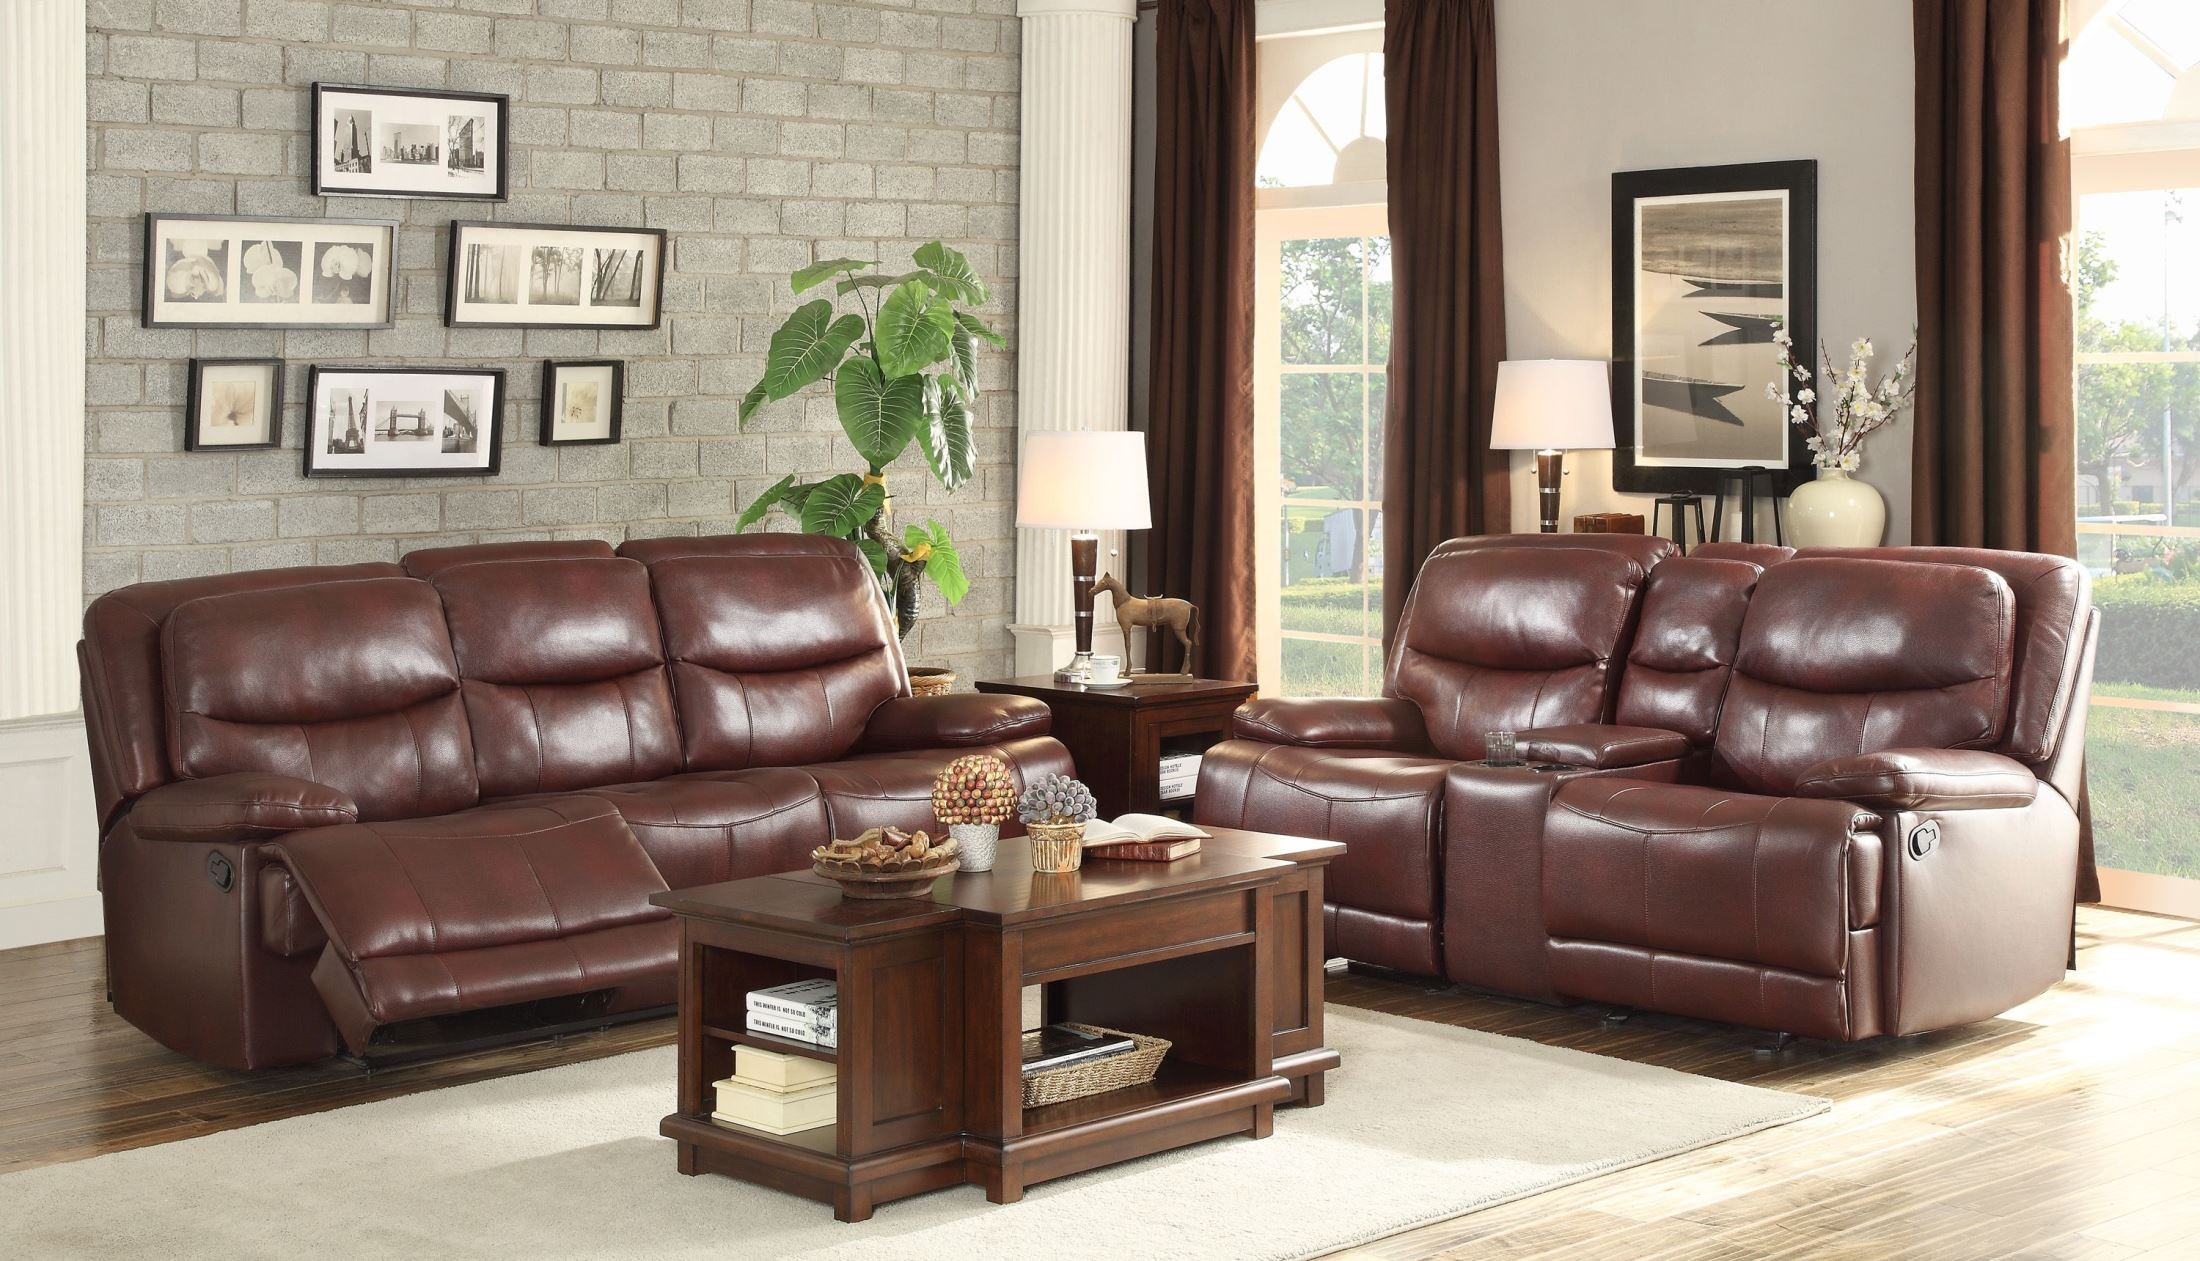 Risco burgundy double reclining living room set from Reclining living room furniture